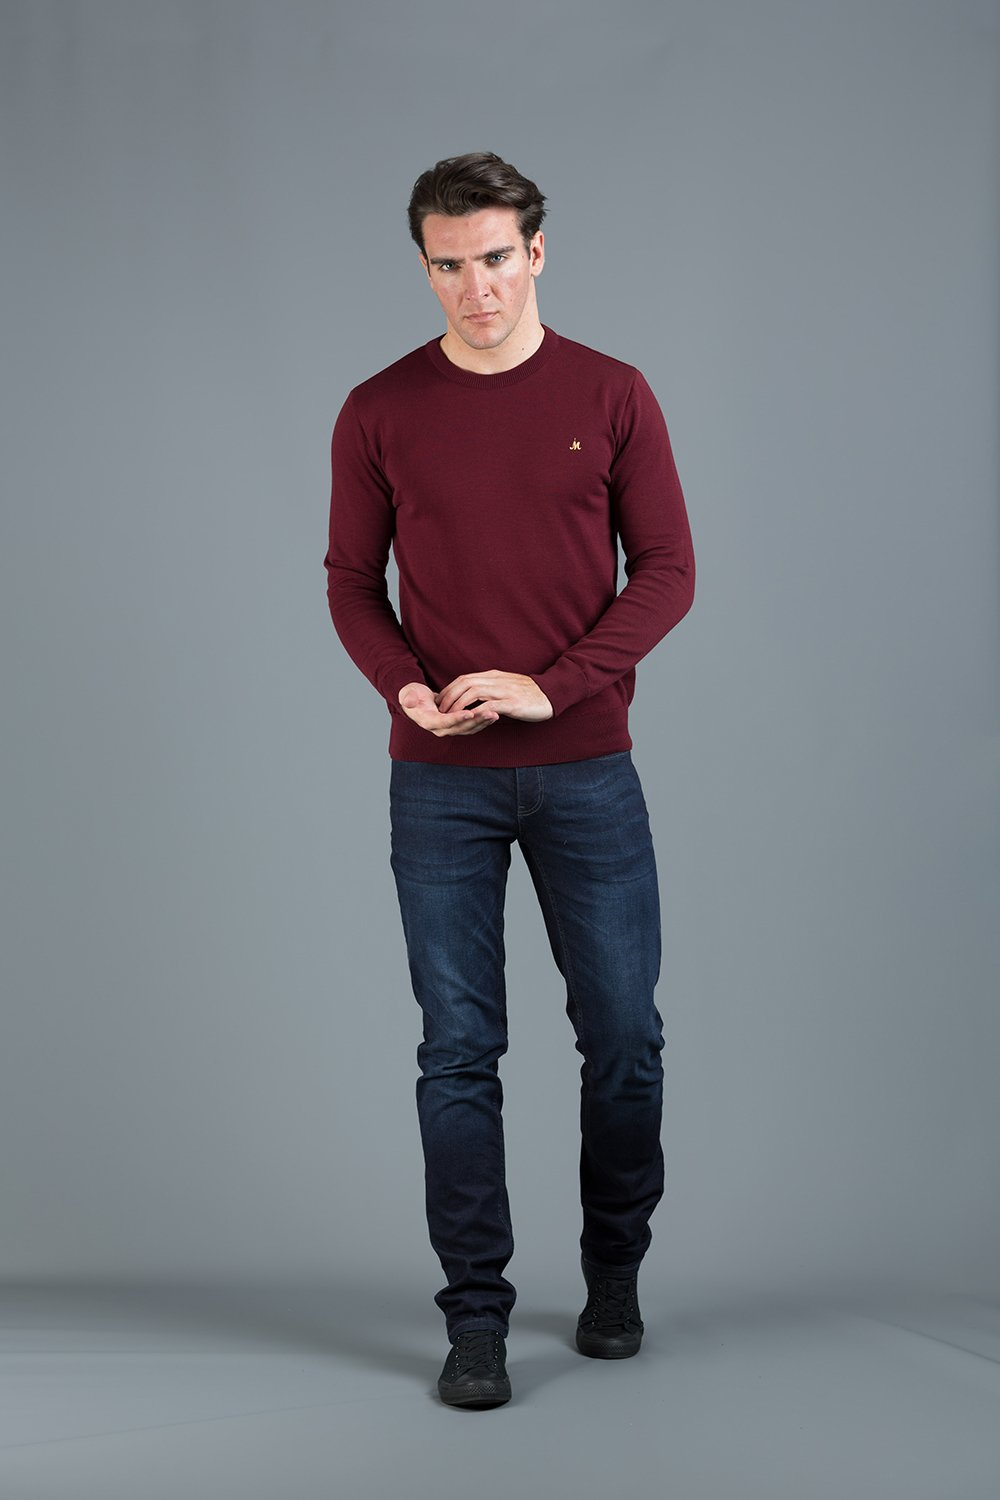 ARIANA 100%COTTON  BURGUNDY CREW NECK KNITWEAR